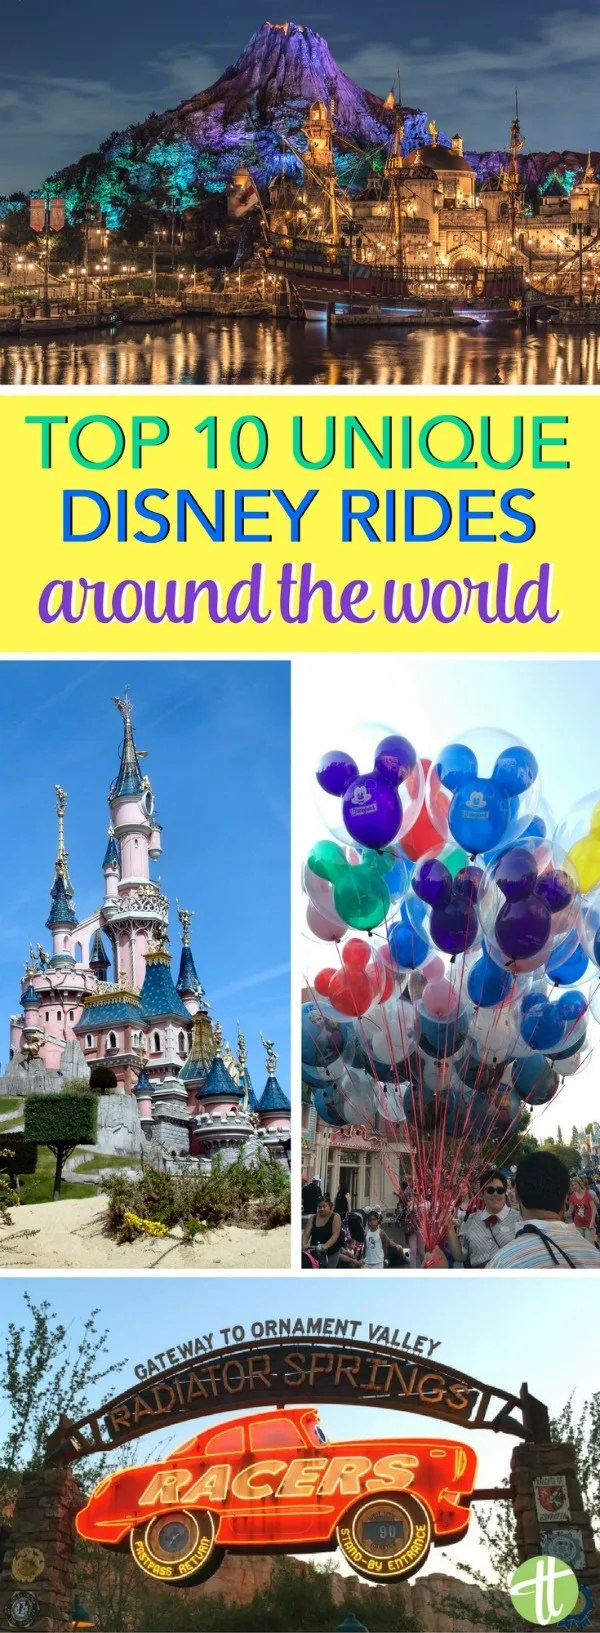 Unique Disney Attractions Around the World: From Shanghai Disney Resort to Paris to Disneyland, these are 10 unique can't-miss rides you can only find in one Disney park.